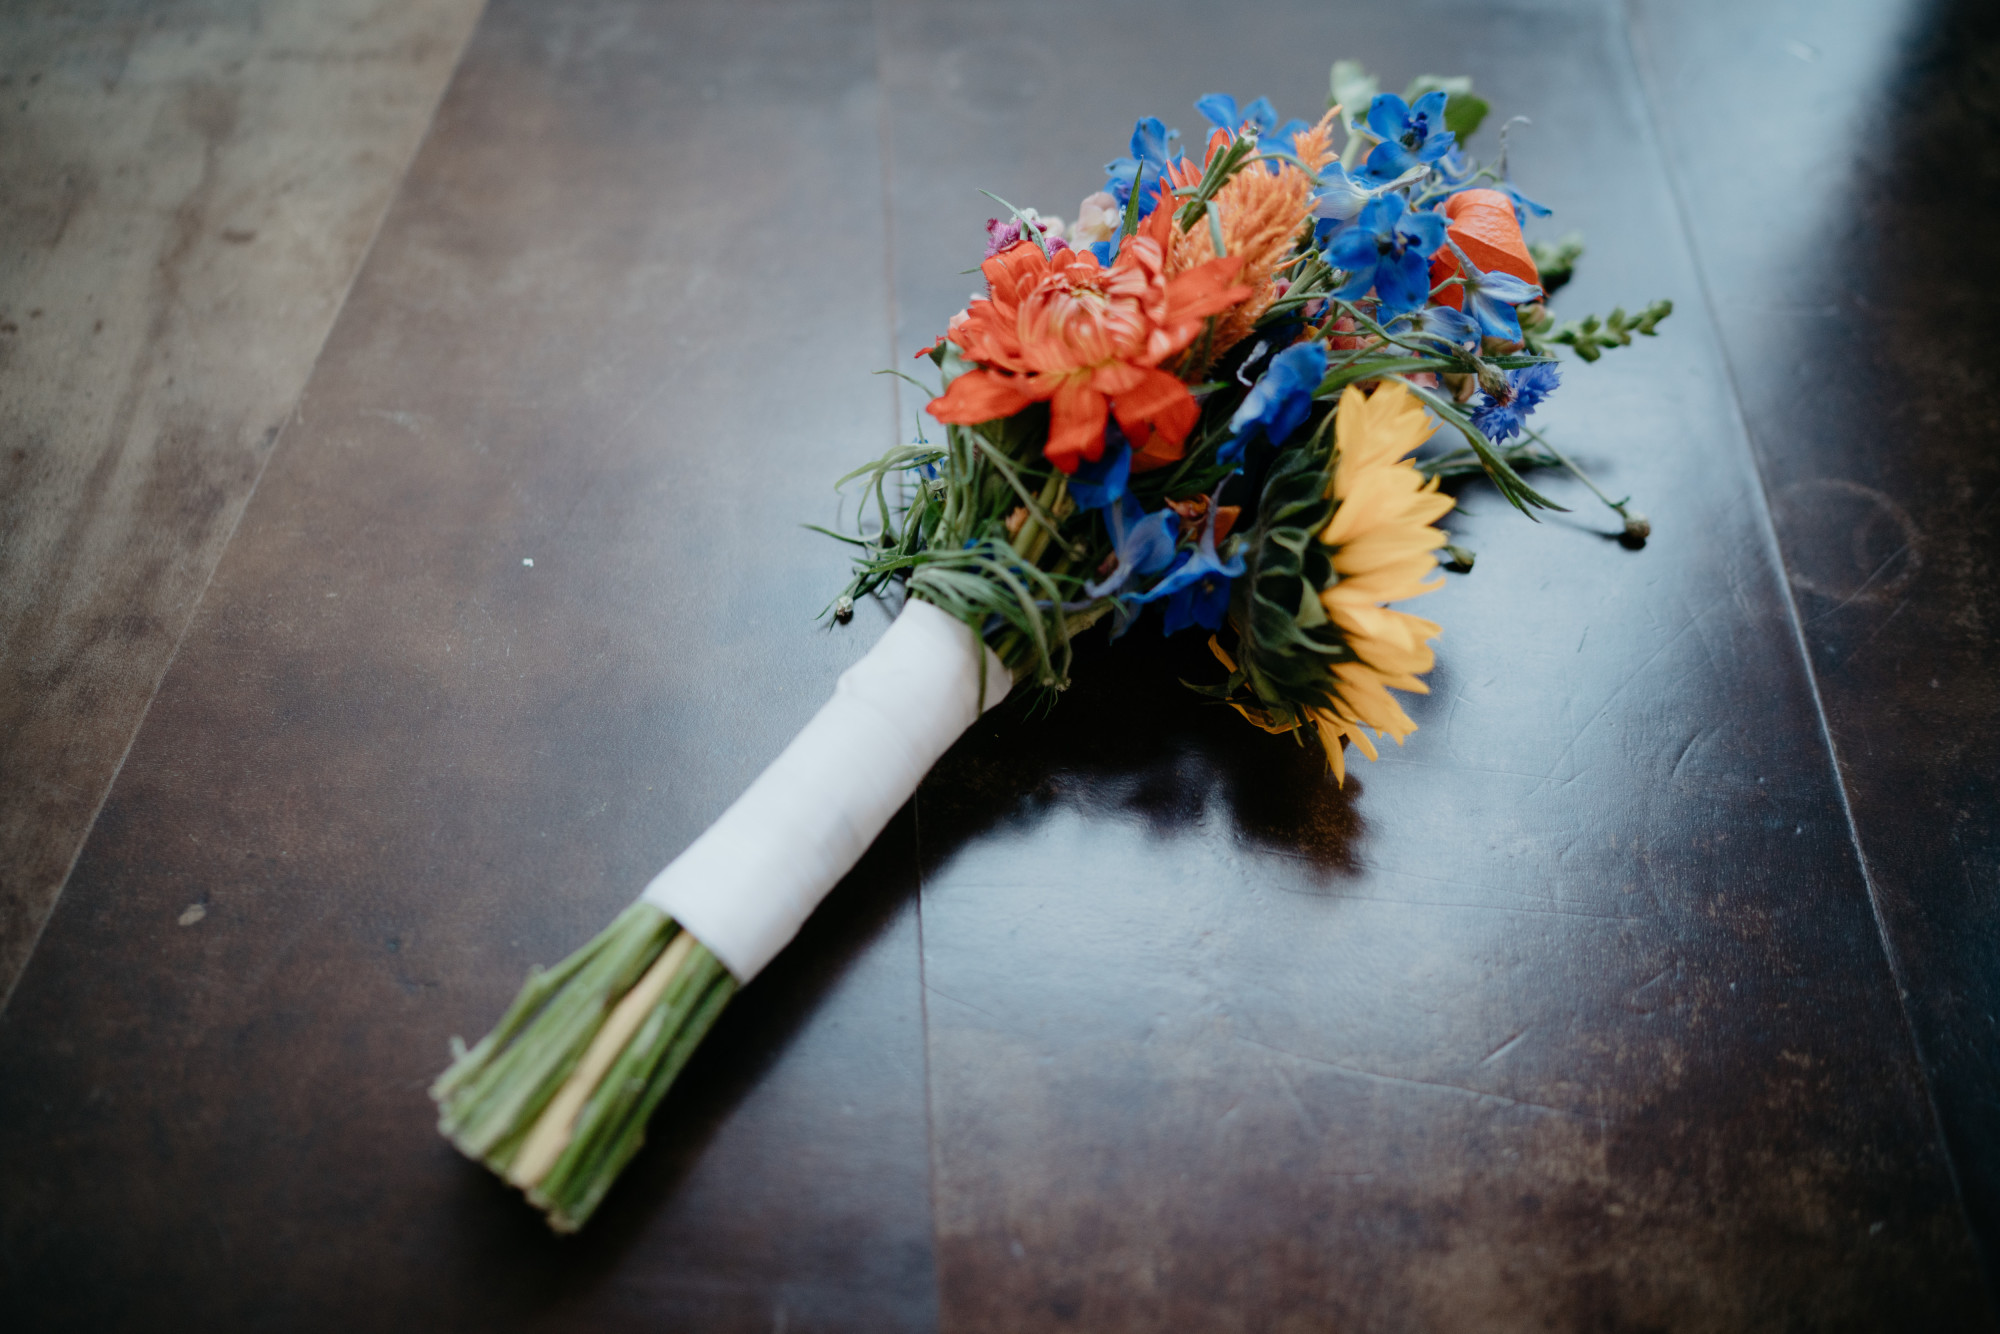 Cheap flower wedding decoration idea's photography by mark hadden